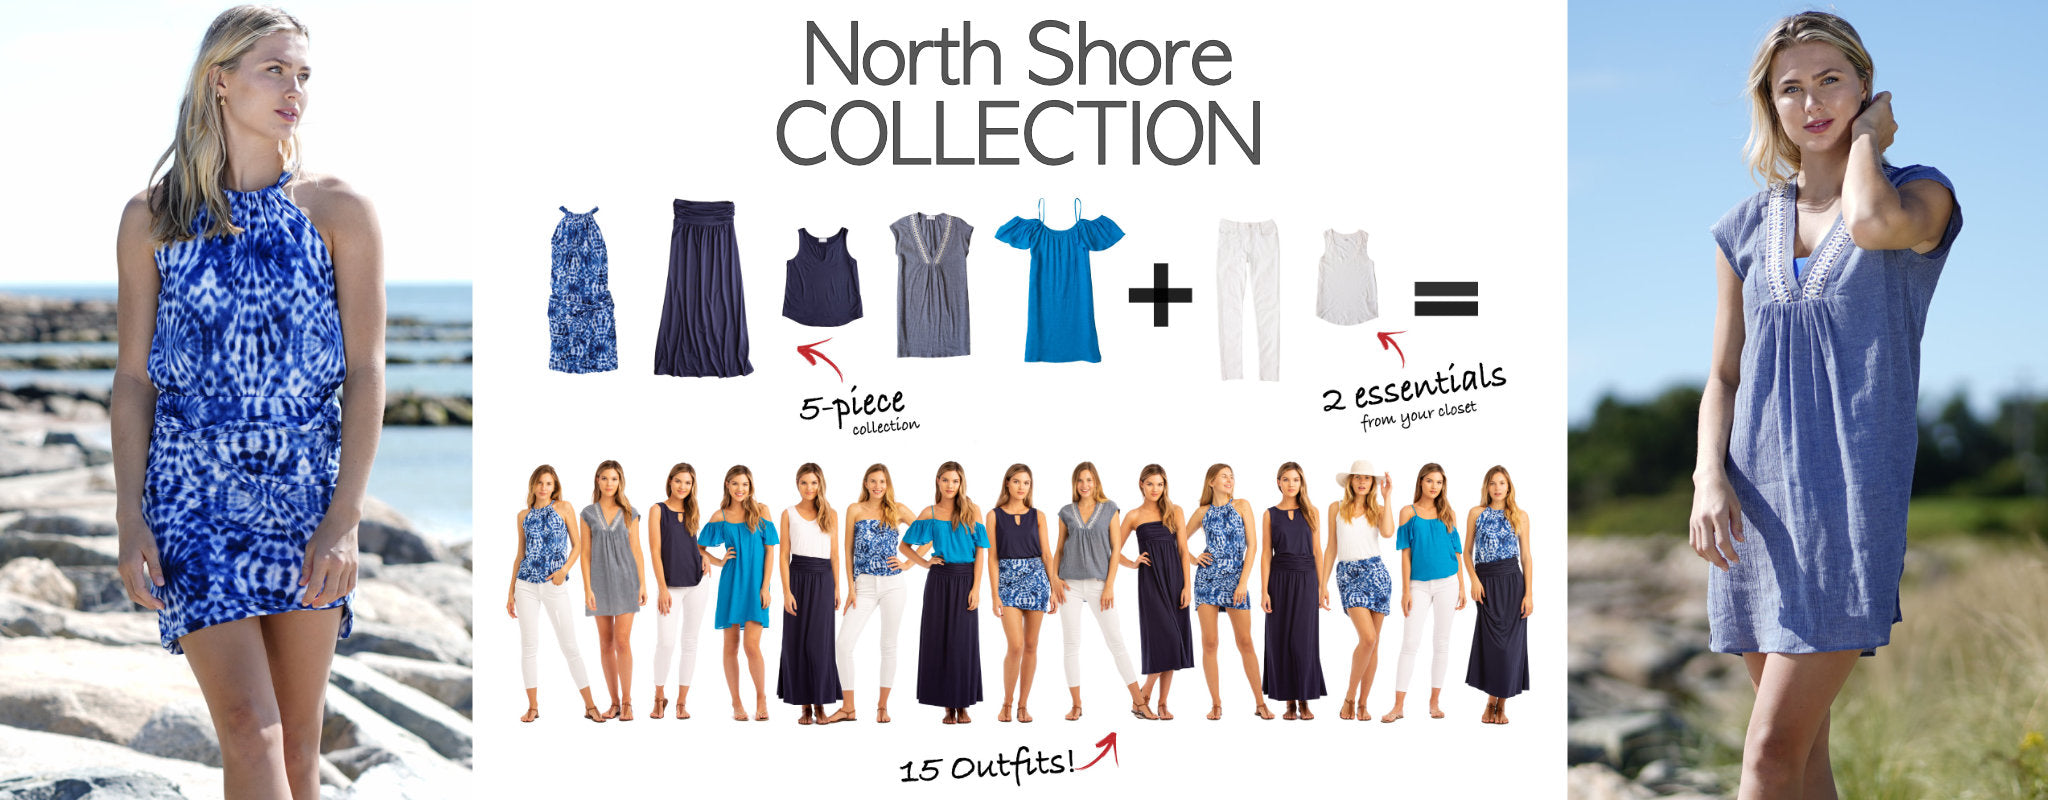 North Shore Collection: 5 items = 17 outfits